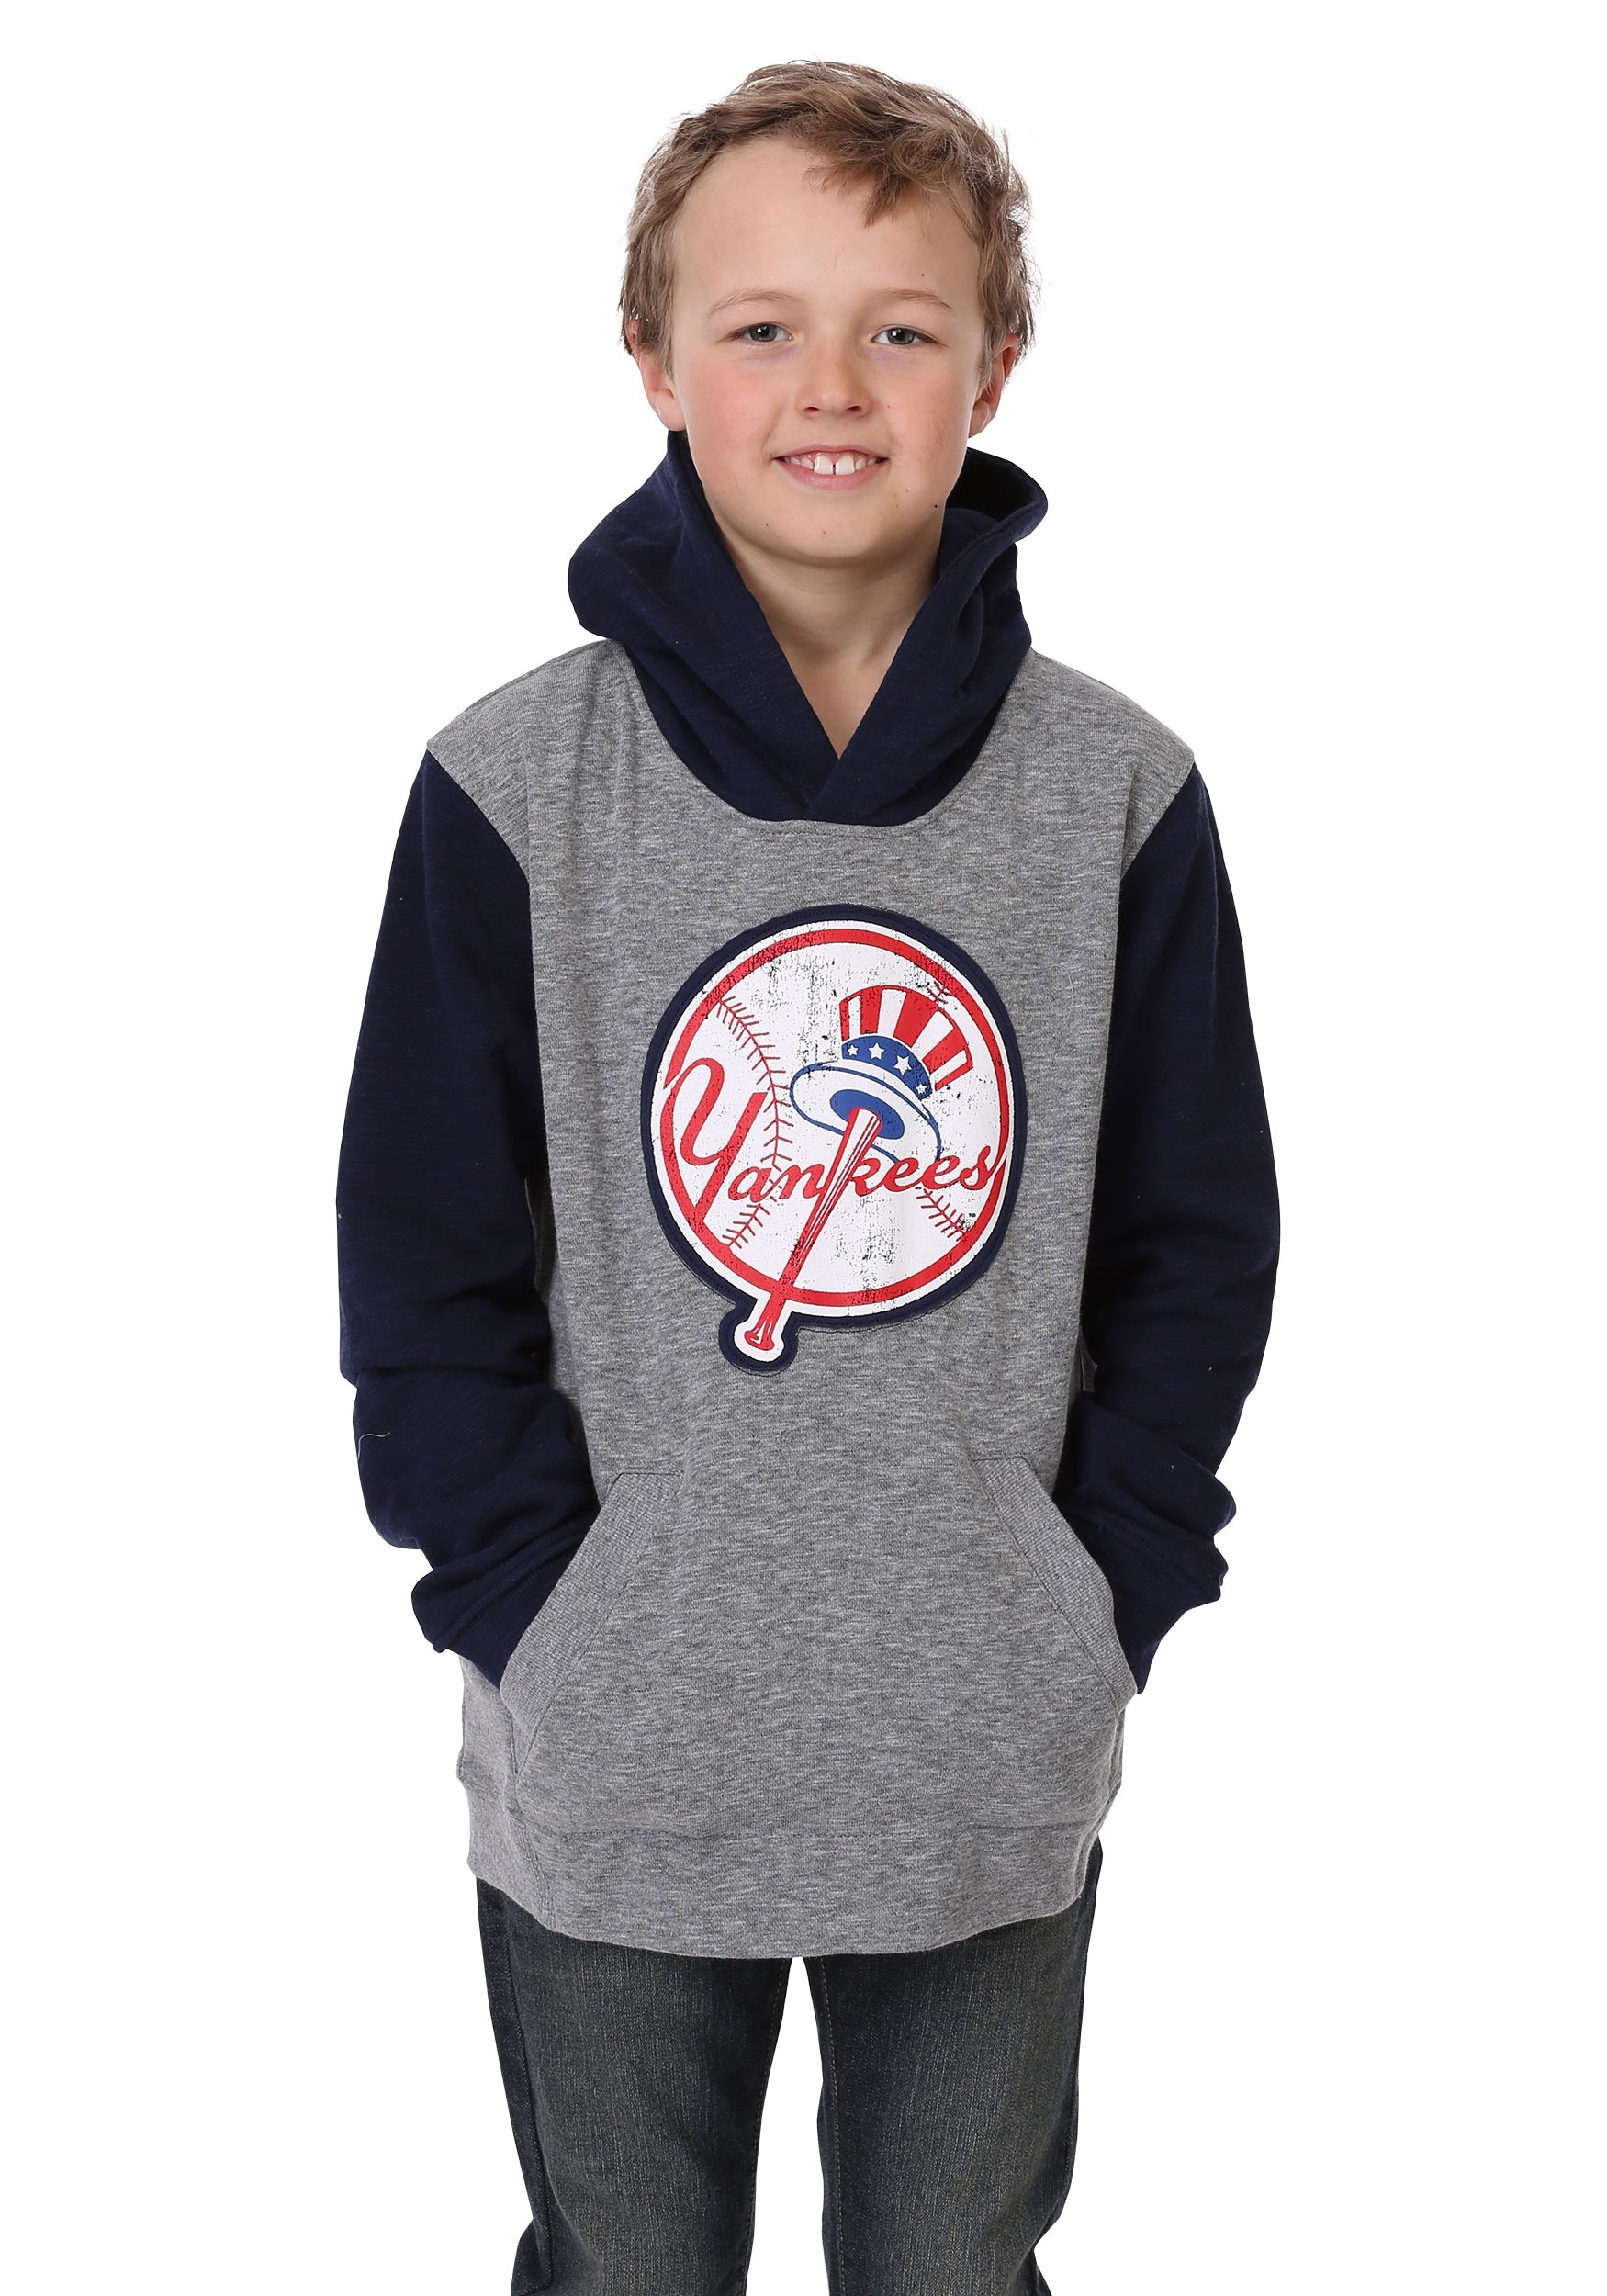 hot sale online 4075e 01cad Yankees New Beginnings Pullover Hooded Youth Sweatshirt